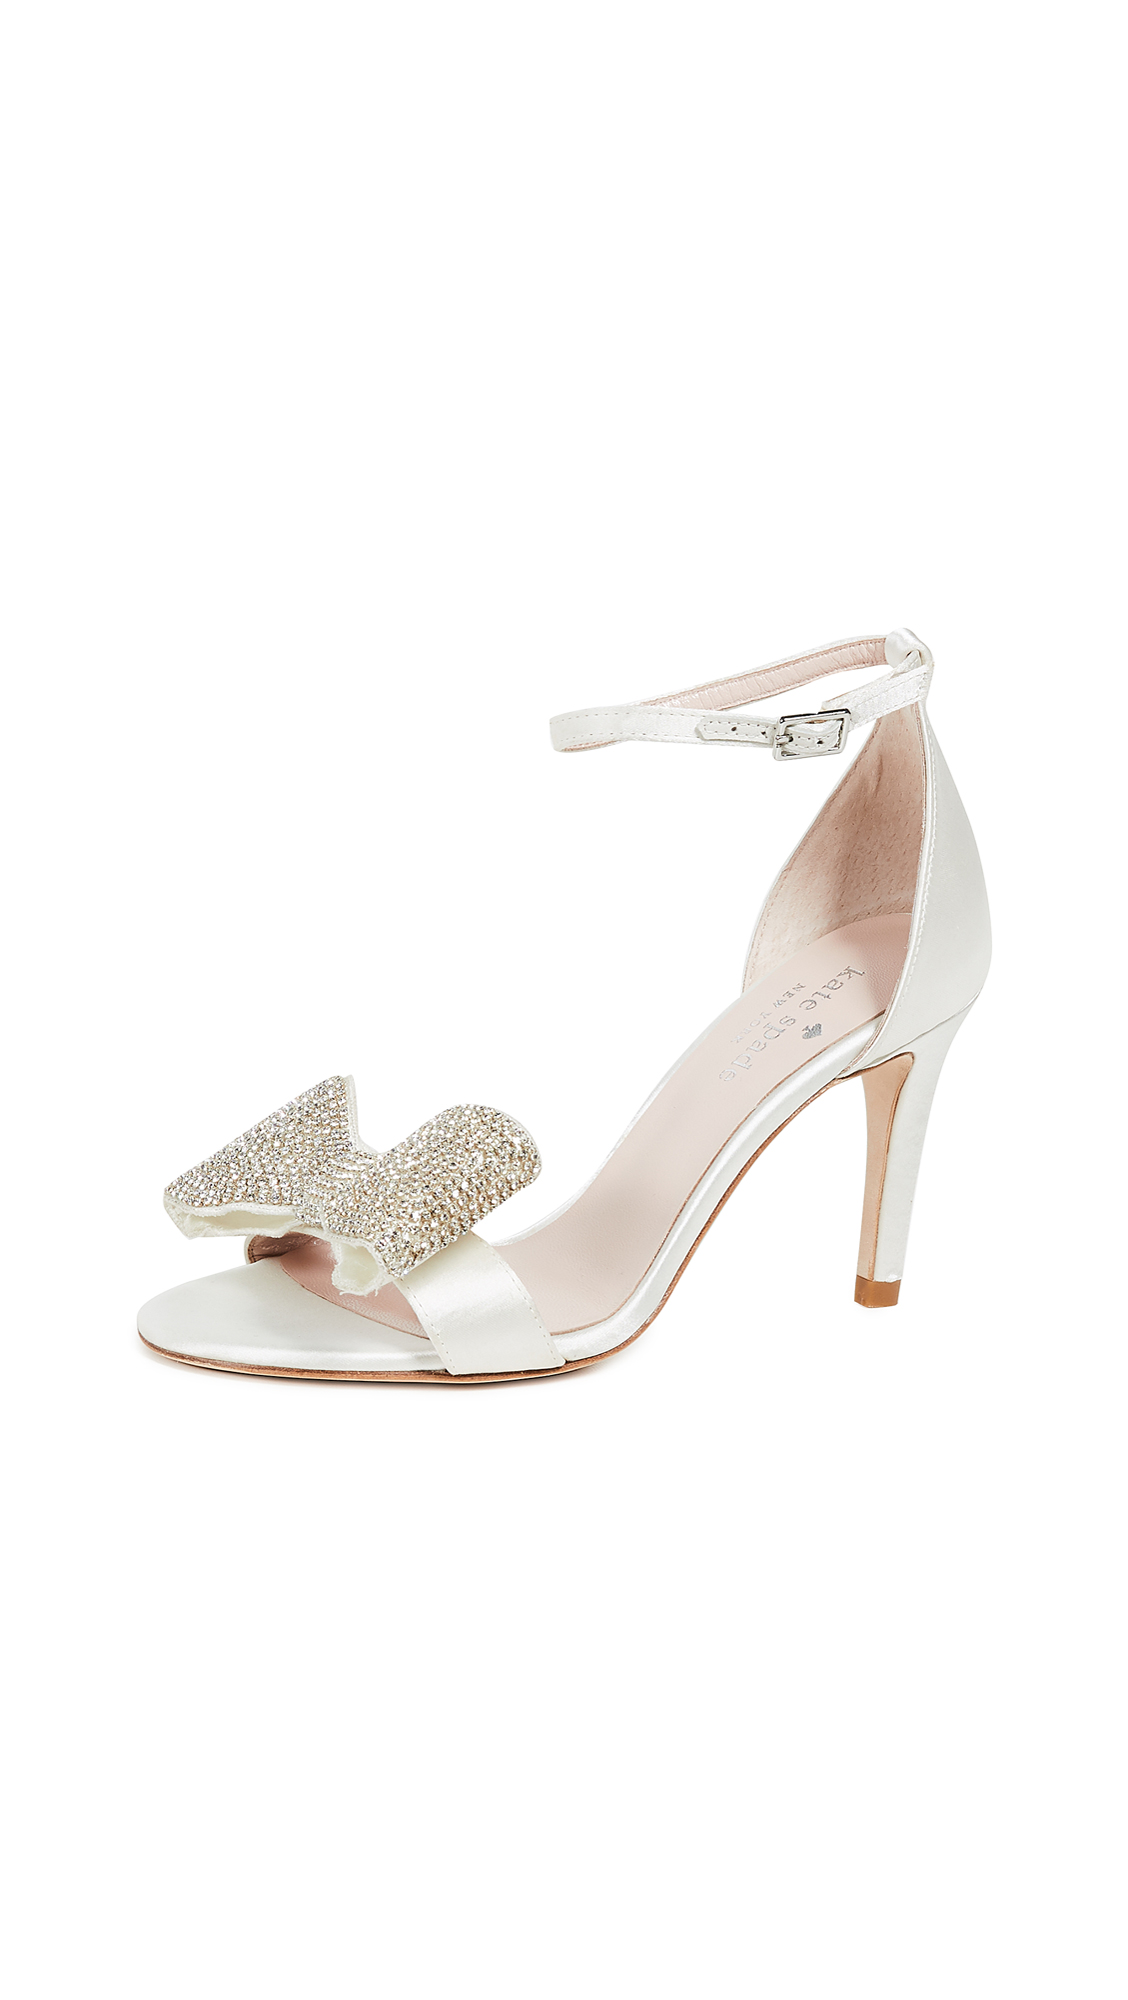 f9790cf71bd Kate Spade New York Sama Imitation Pearl Sandals · Kate Spade New York  Gweneth Strappy Sandals